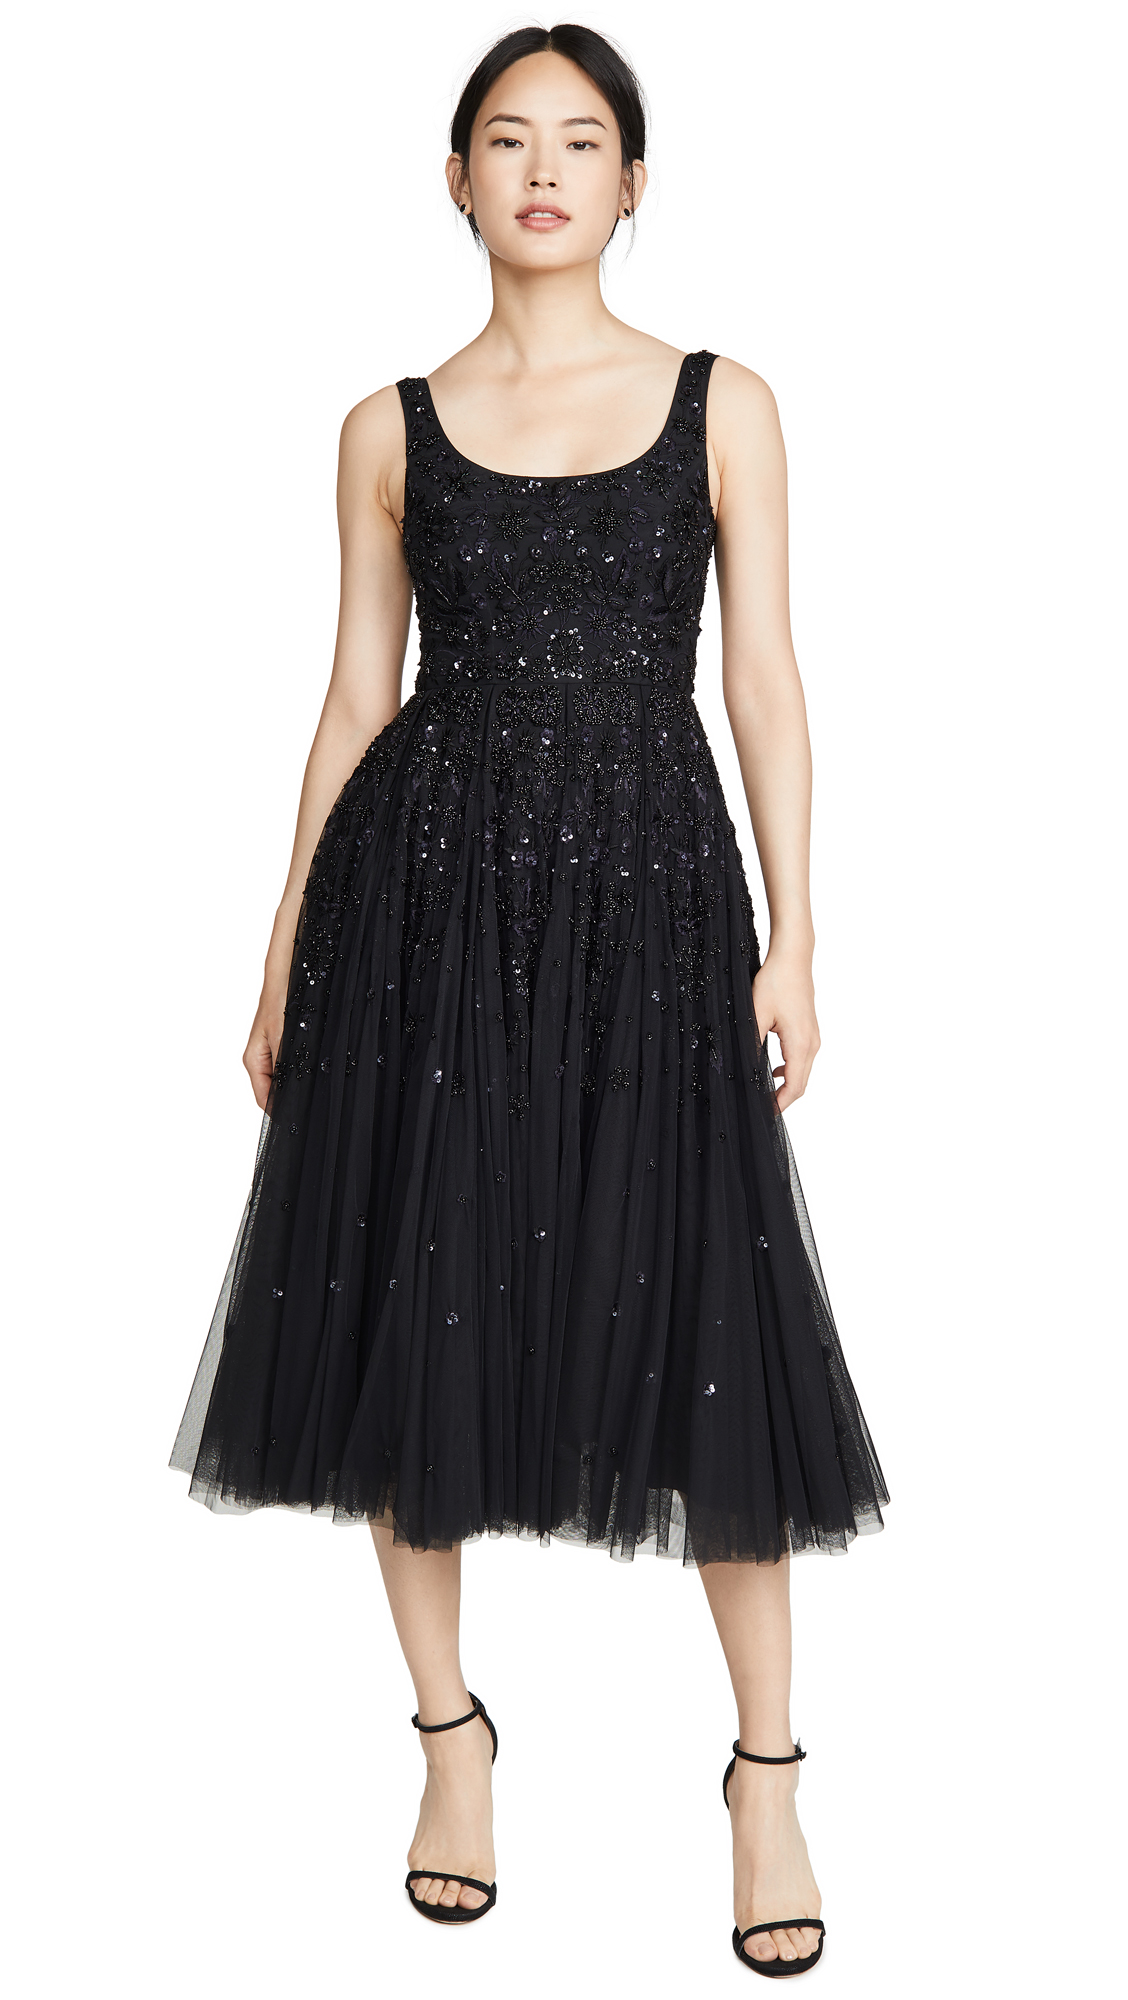 Needle & Thread Snow Flake Prom Dress - 30% Off Sale